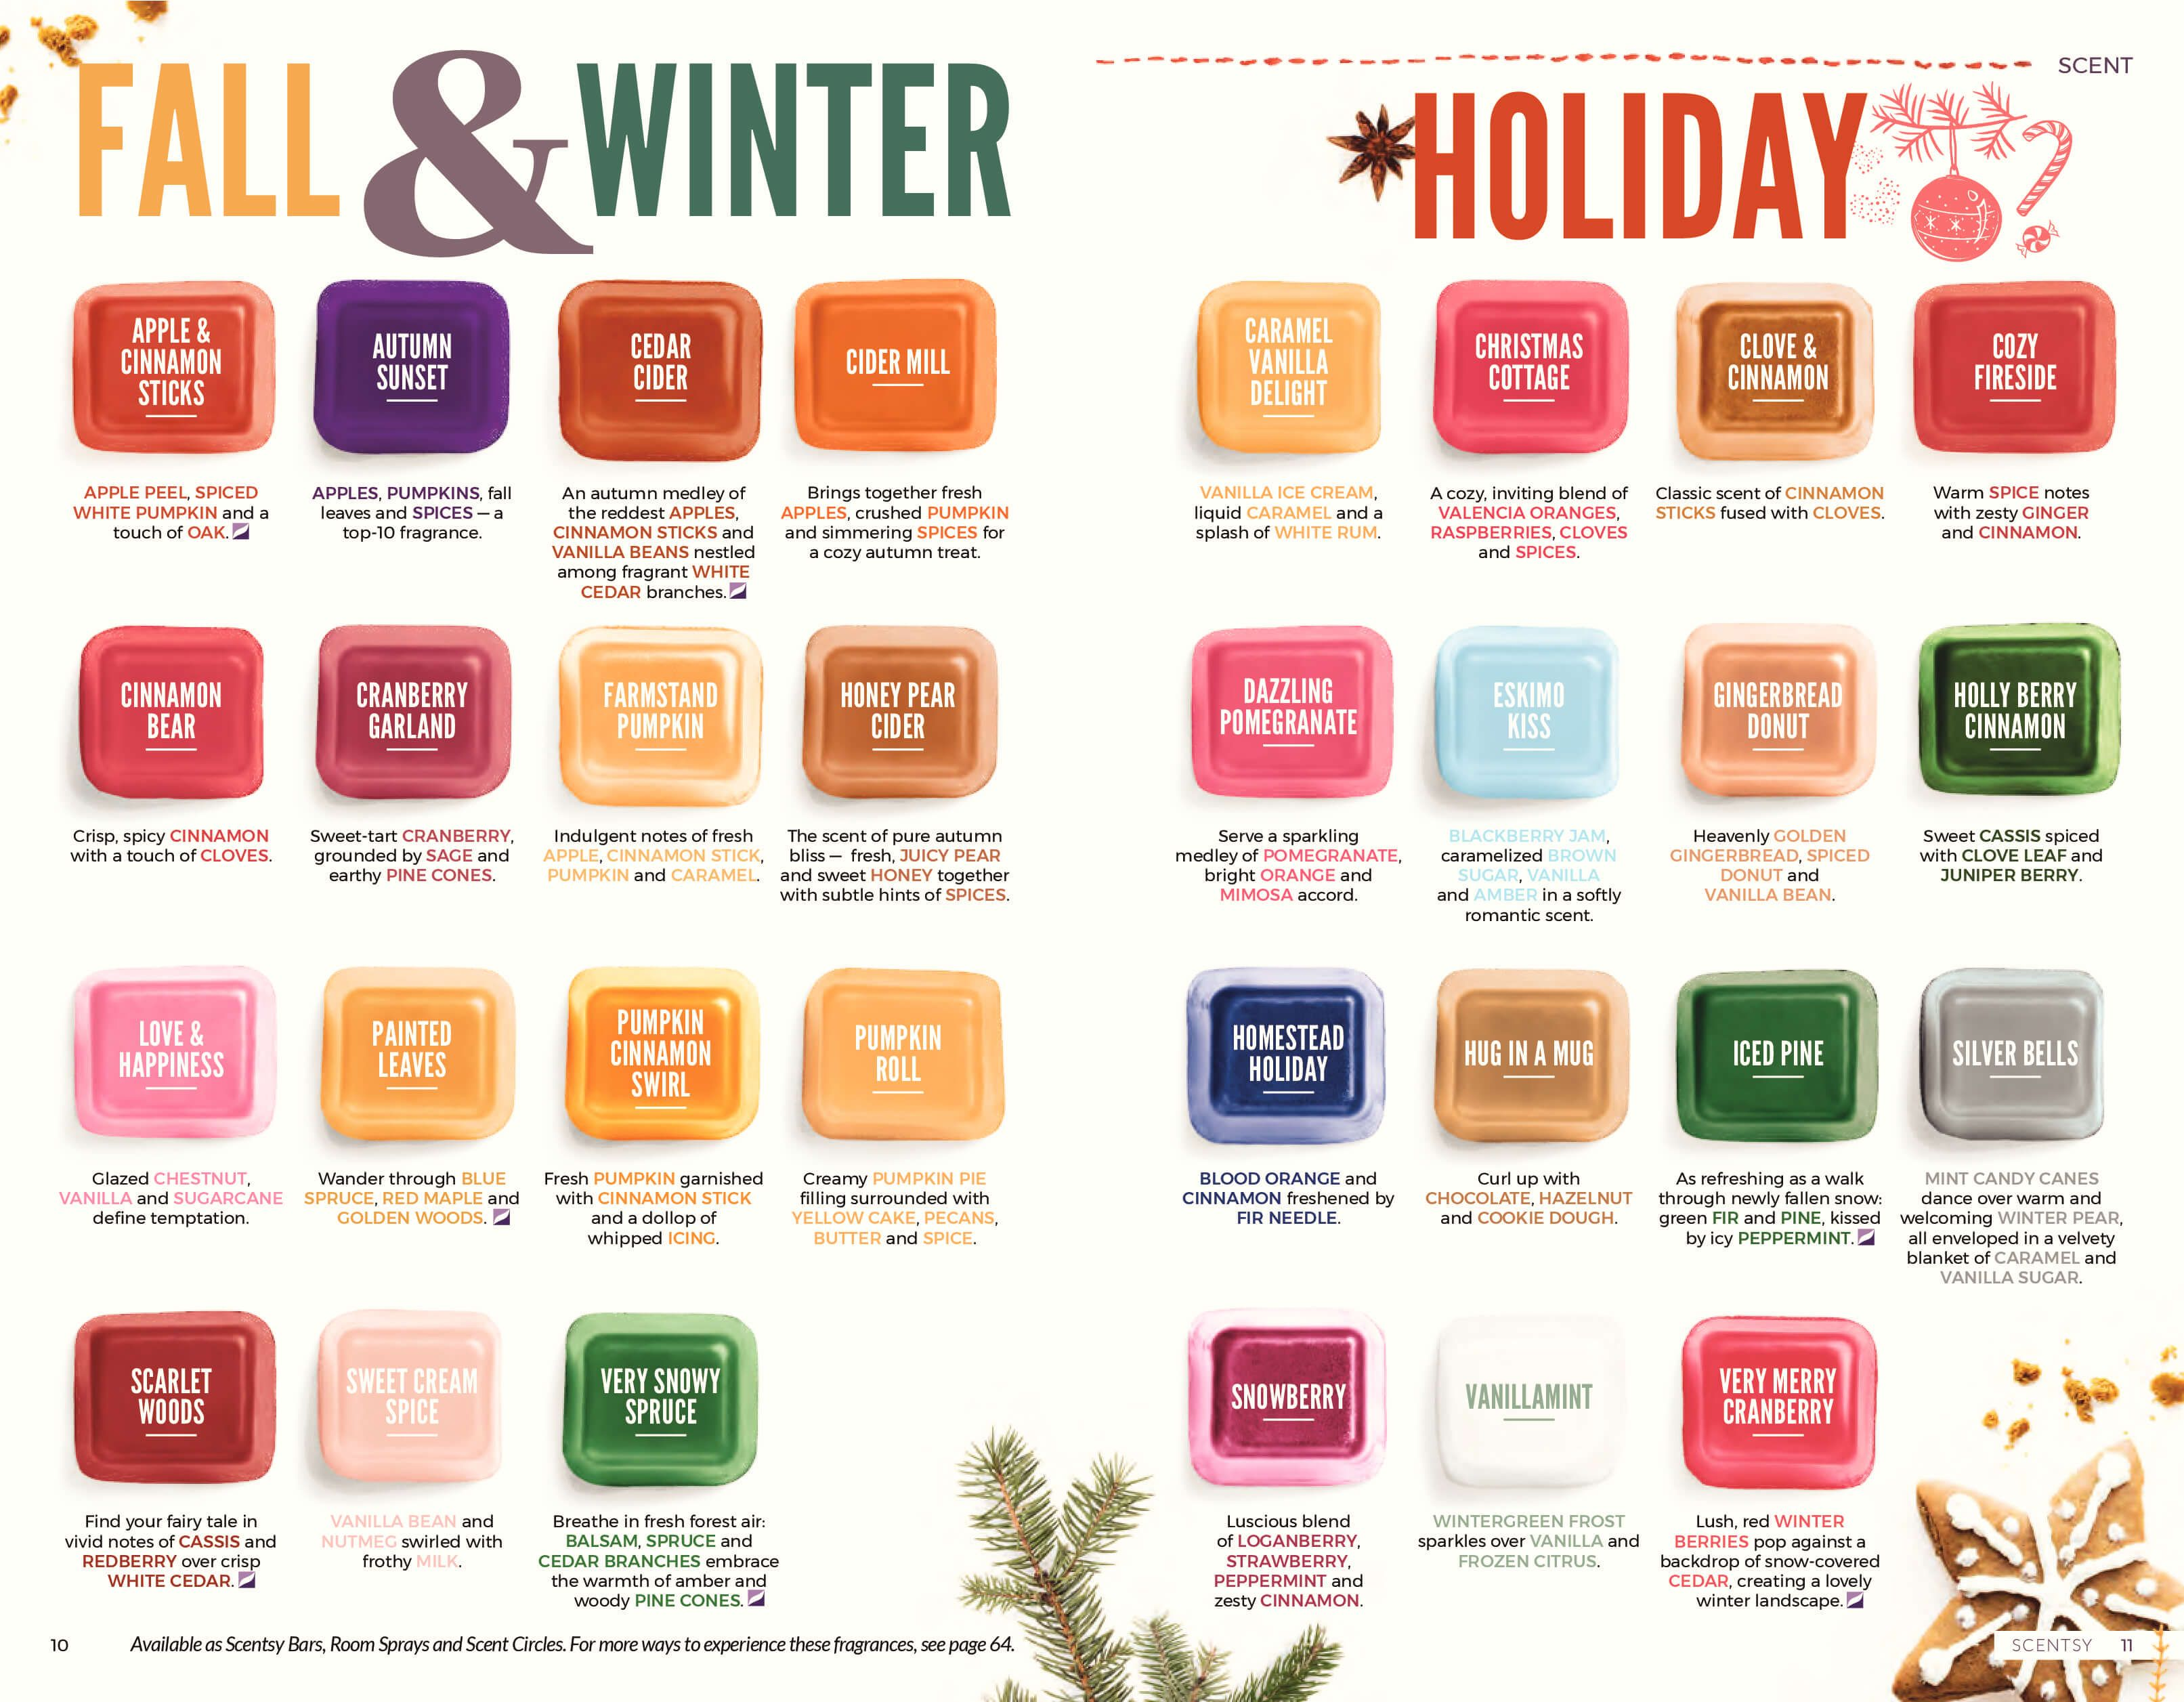 SCENTSY COMPLETE SCENT LIST FOR FALL WINTER 2018 2019